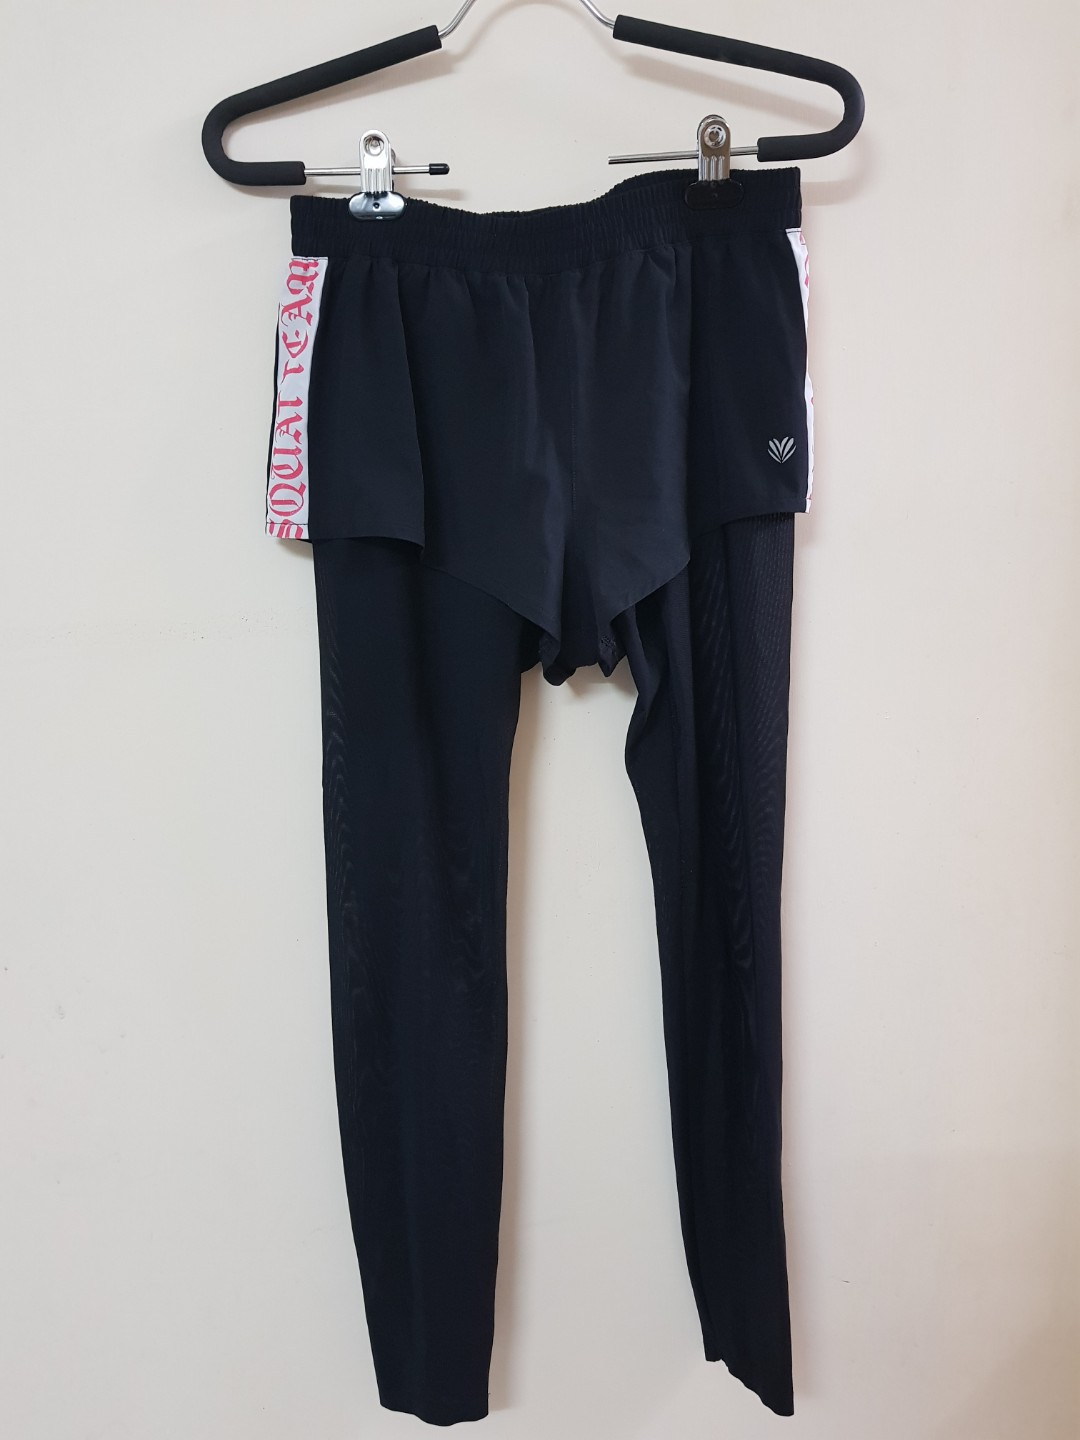 8bfaac5ec058b4 FOREVER 21 LEGGING PANT, Sports, Athletic & Sports Clothing on Carousell